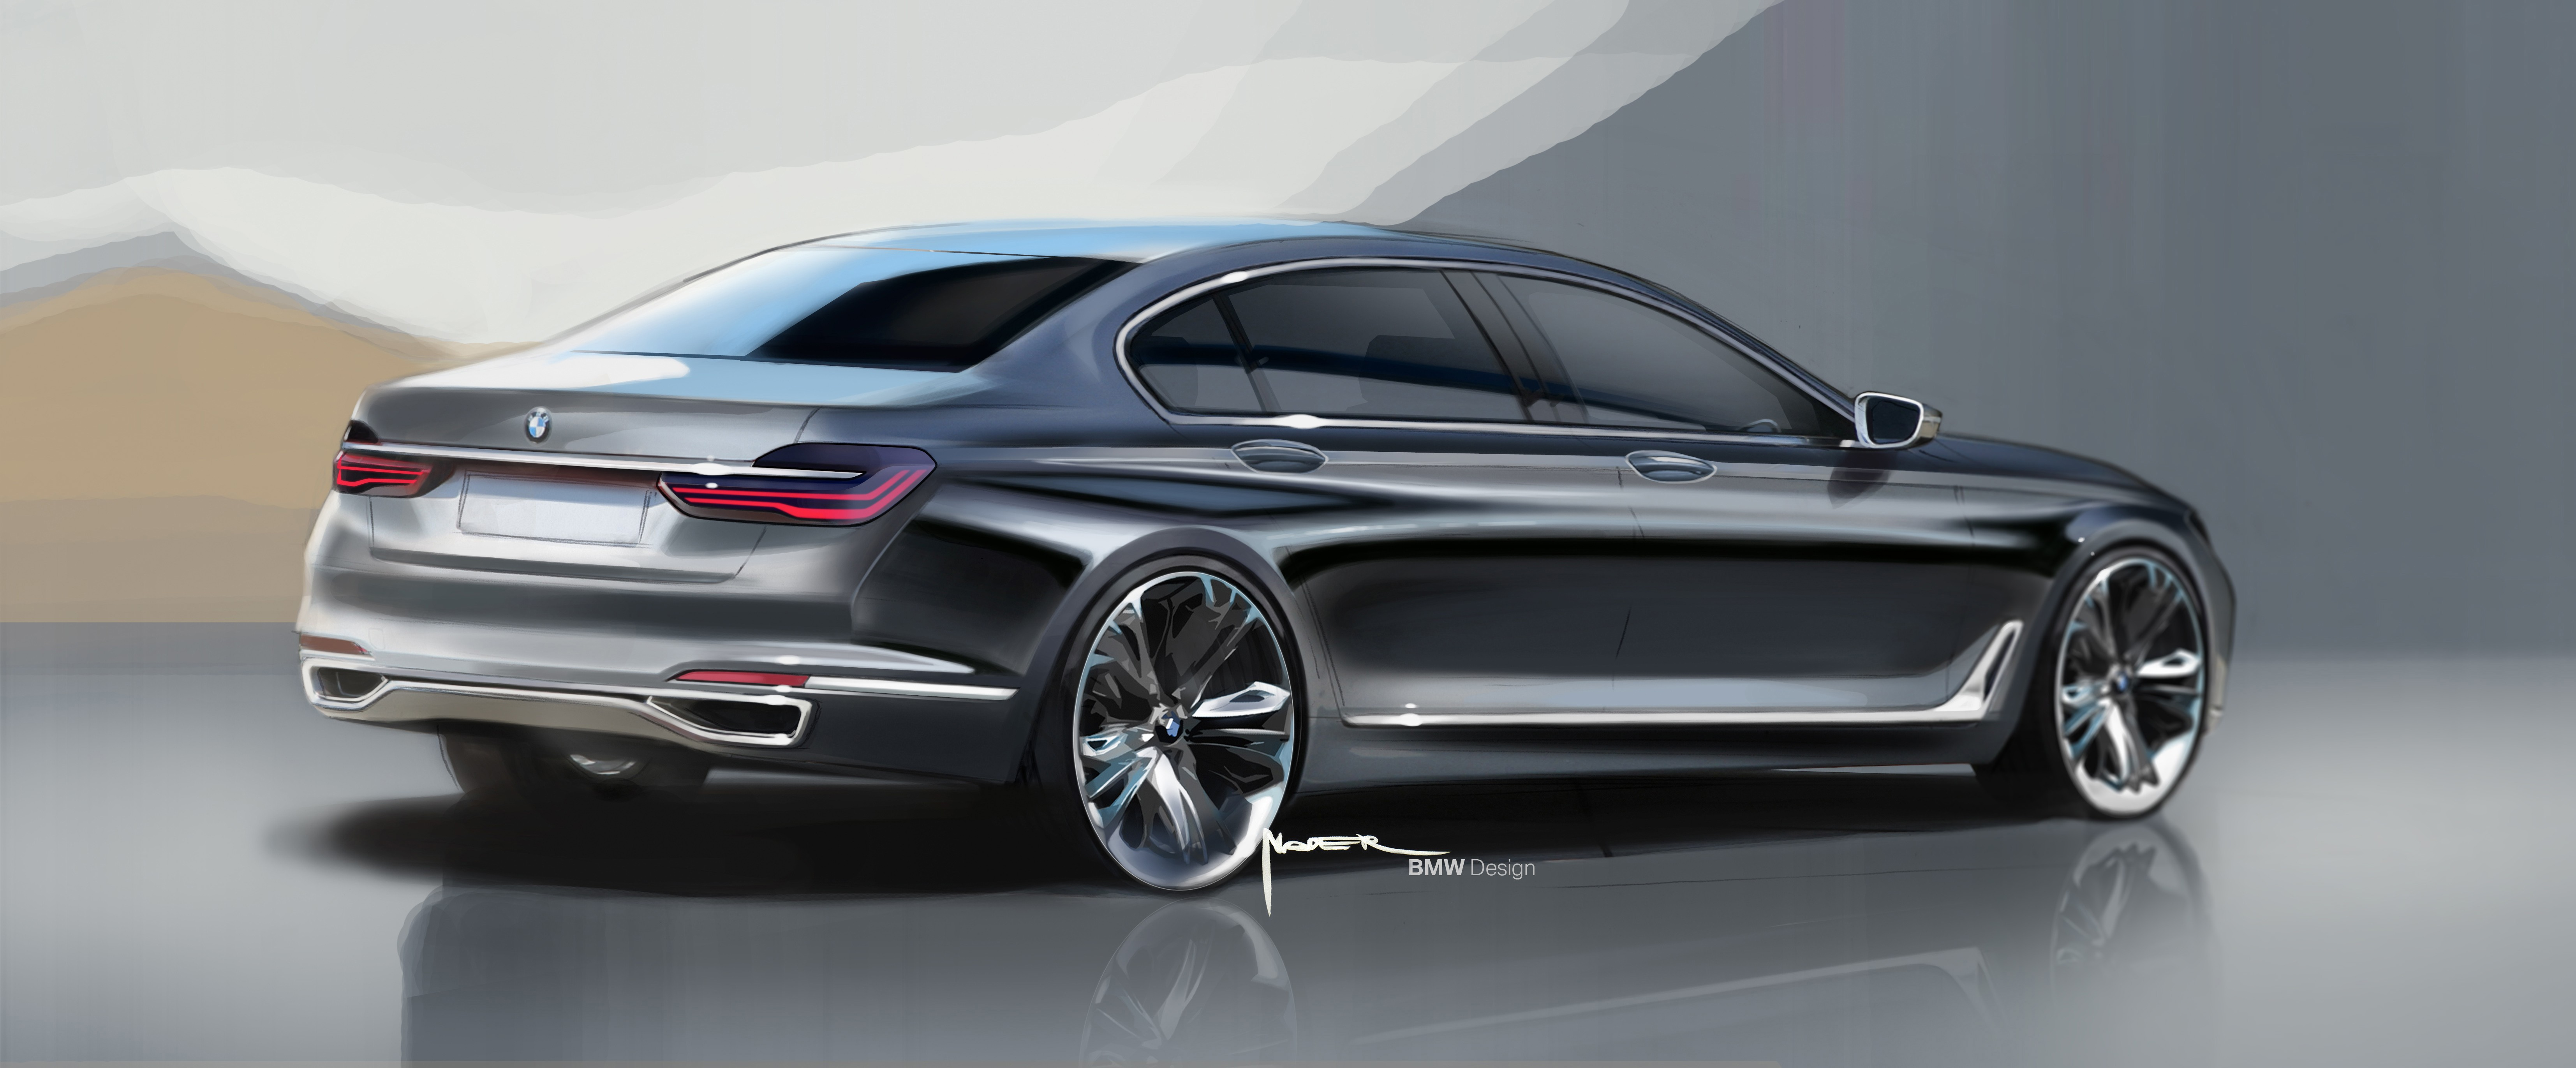 2016 BMW 7 Series Wallpapers and Videos Want to Pull You ...